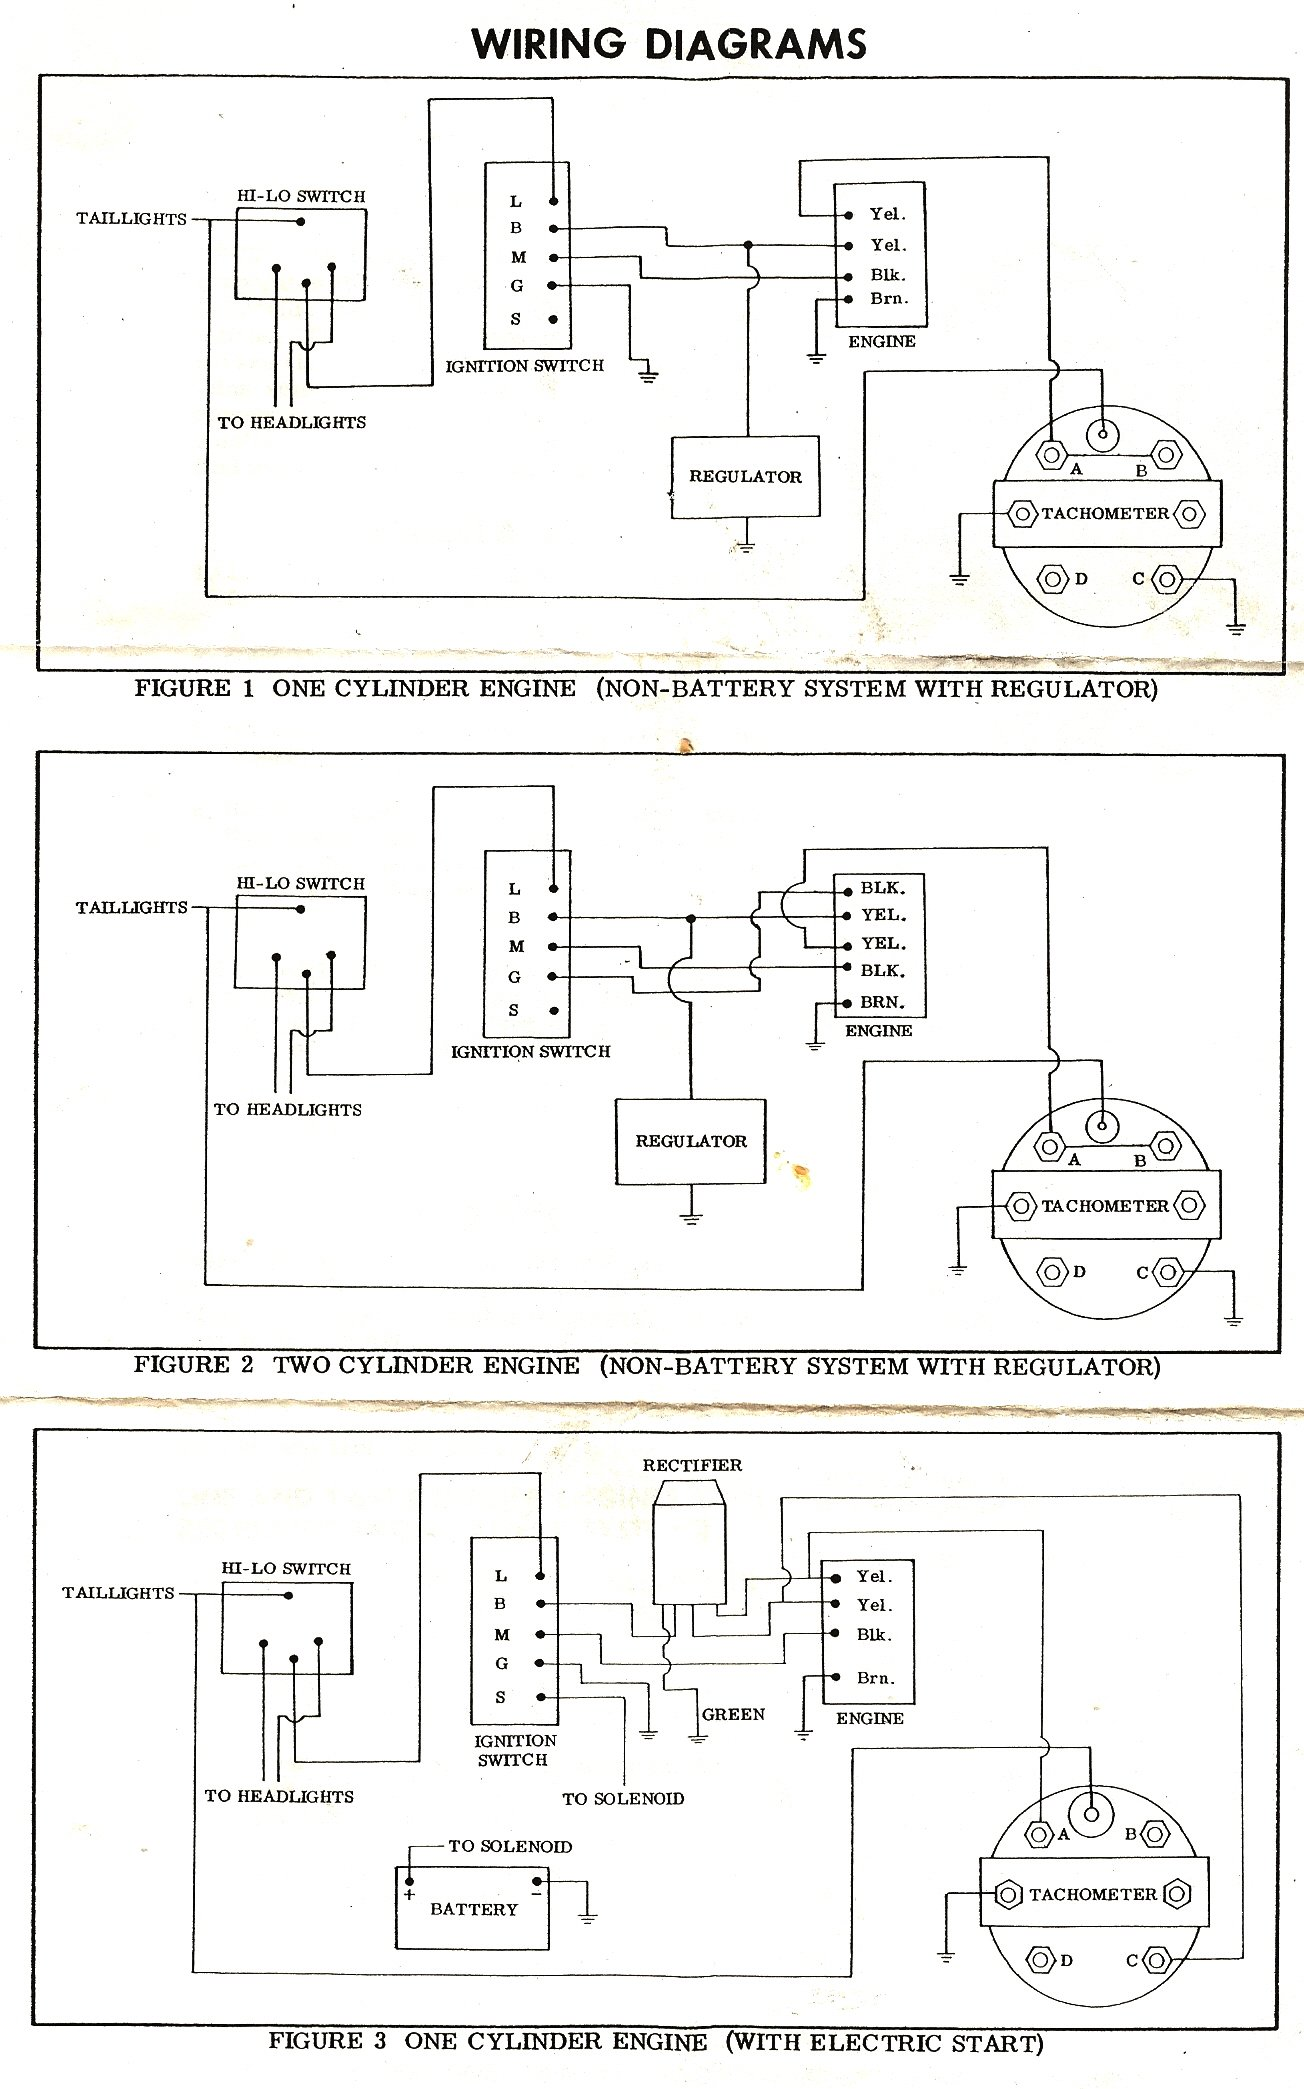 Wiring Diagram 1972 Arctic Cat Puma Free Download 95 340 Cheetah Tach Arcticchat Com Forum Moreover 1969 Together With